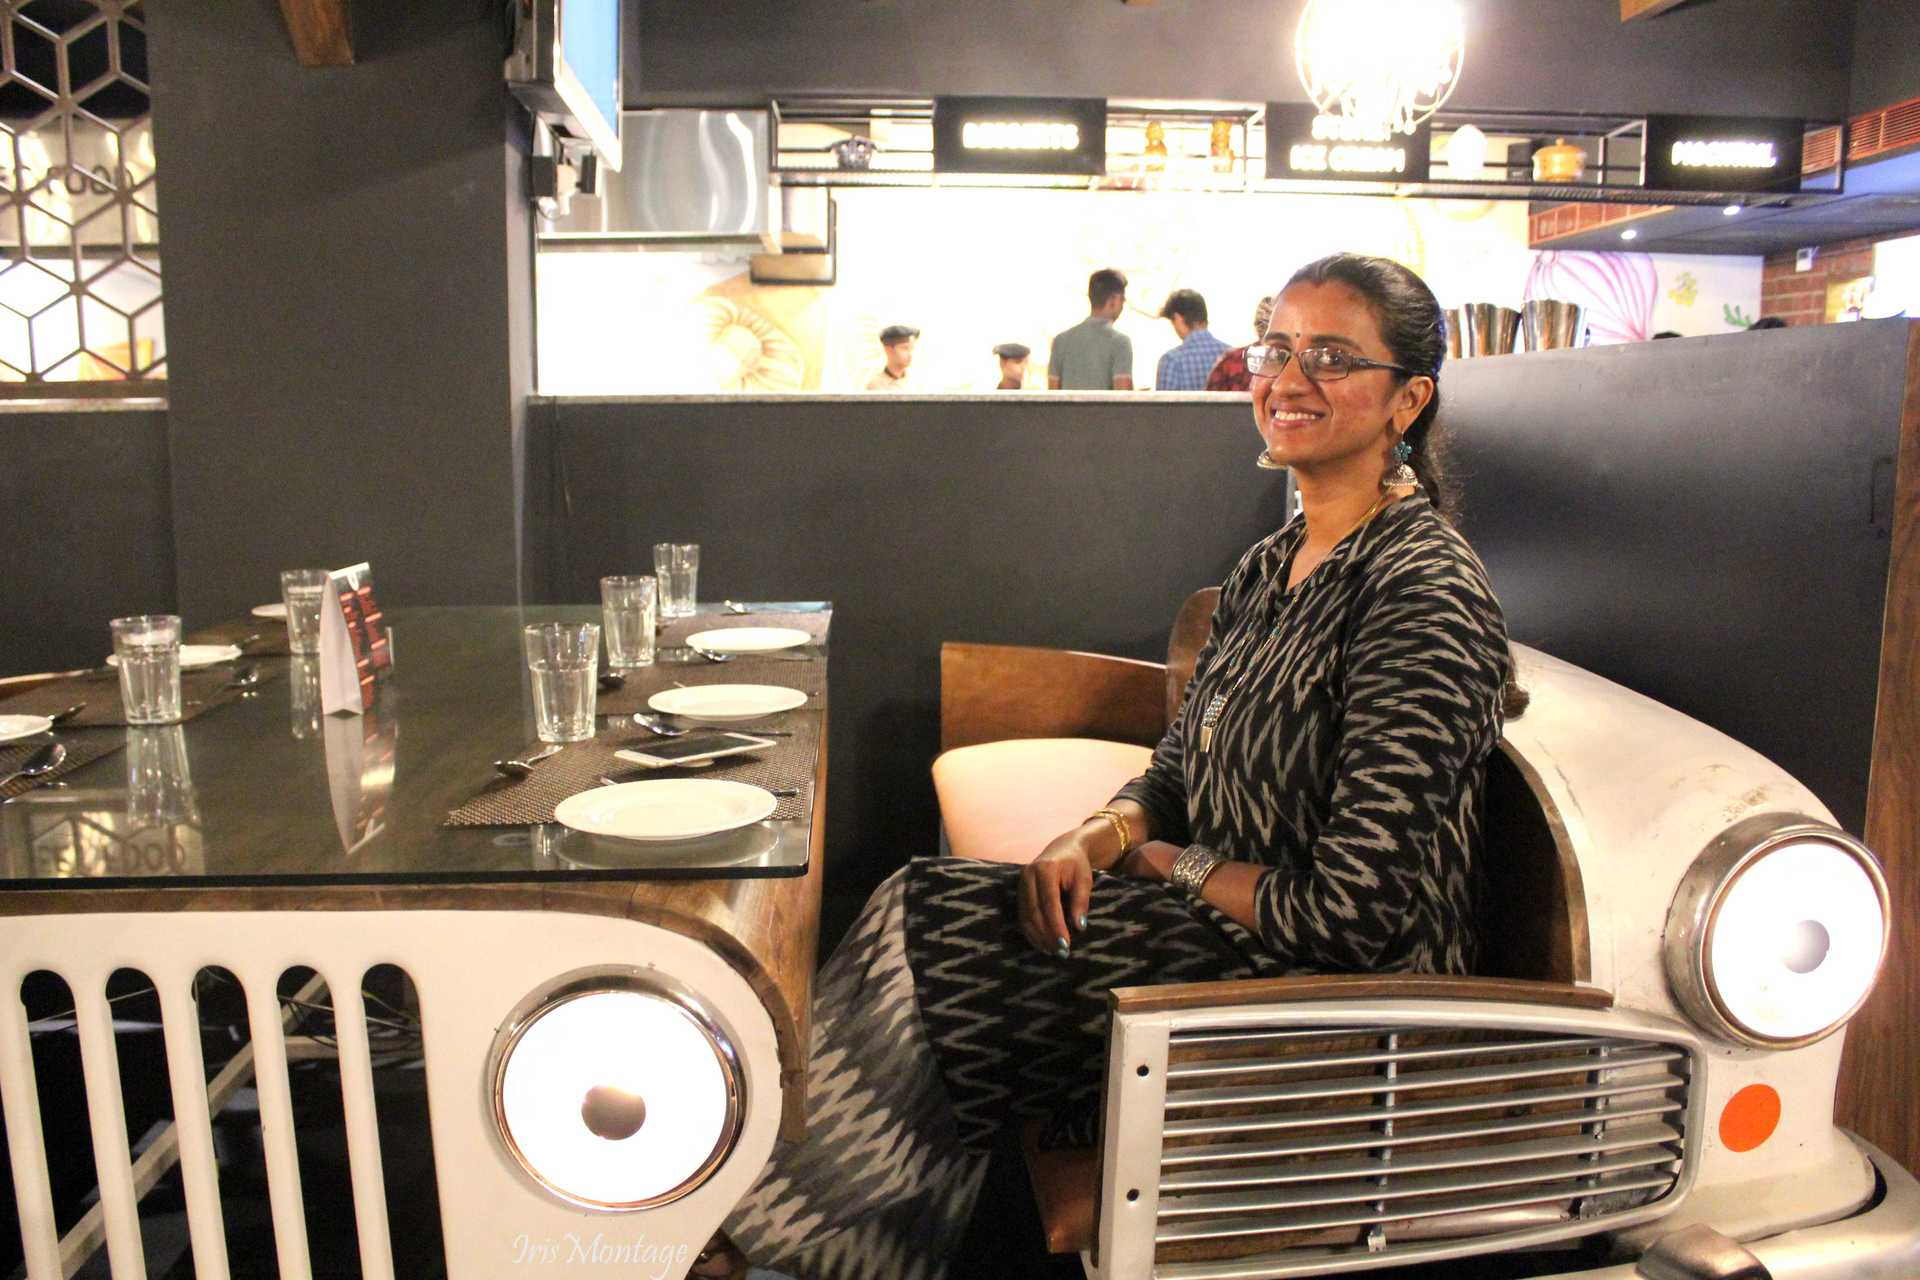 IrisMontage - 27 culinary street_chennai review